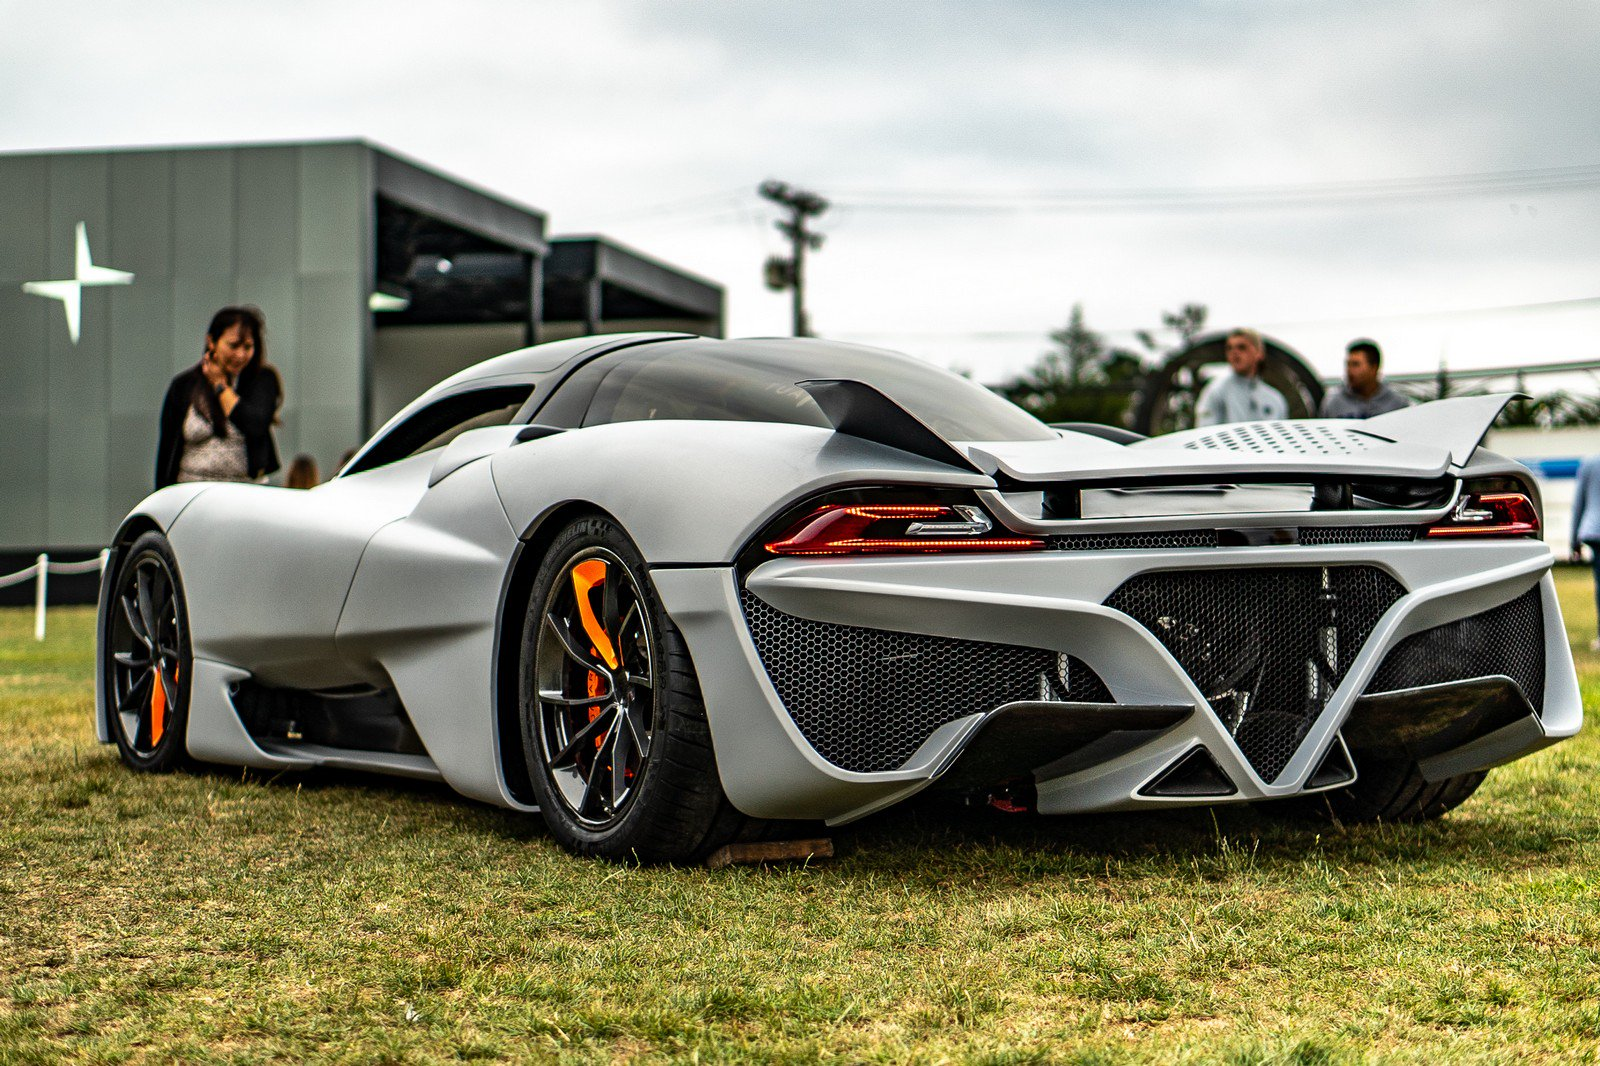 Shelby Supercars Is Back With The 1 750 Horsepower Tuatara